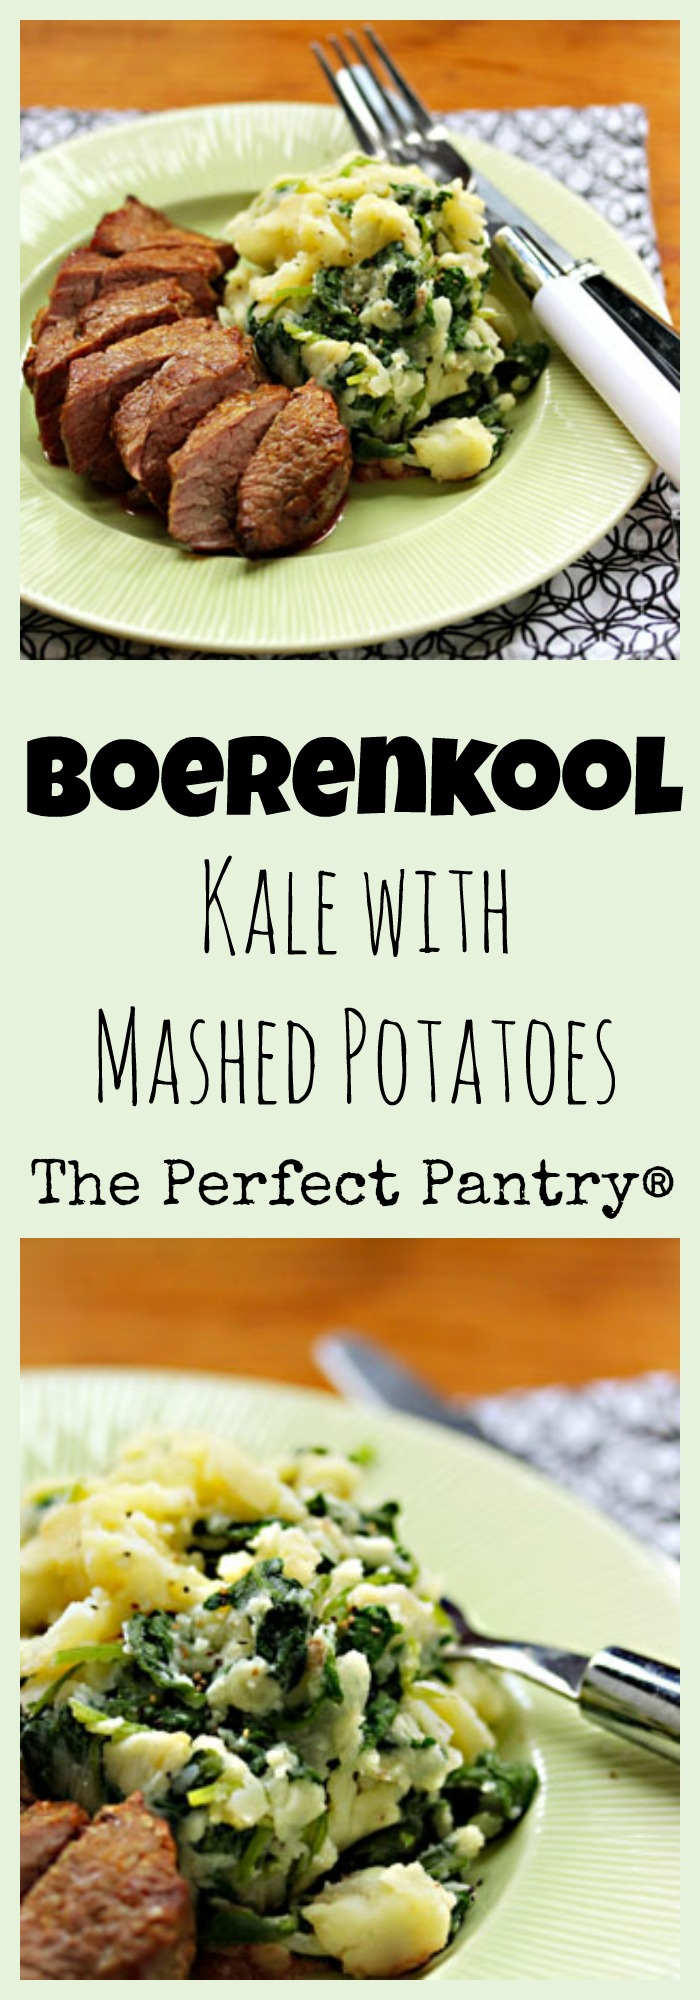 Boerenkool (kale with mashed potatoes), an easy side dish. #vegetarian #glutenfree